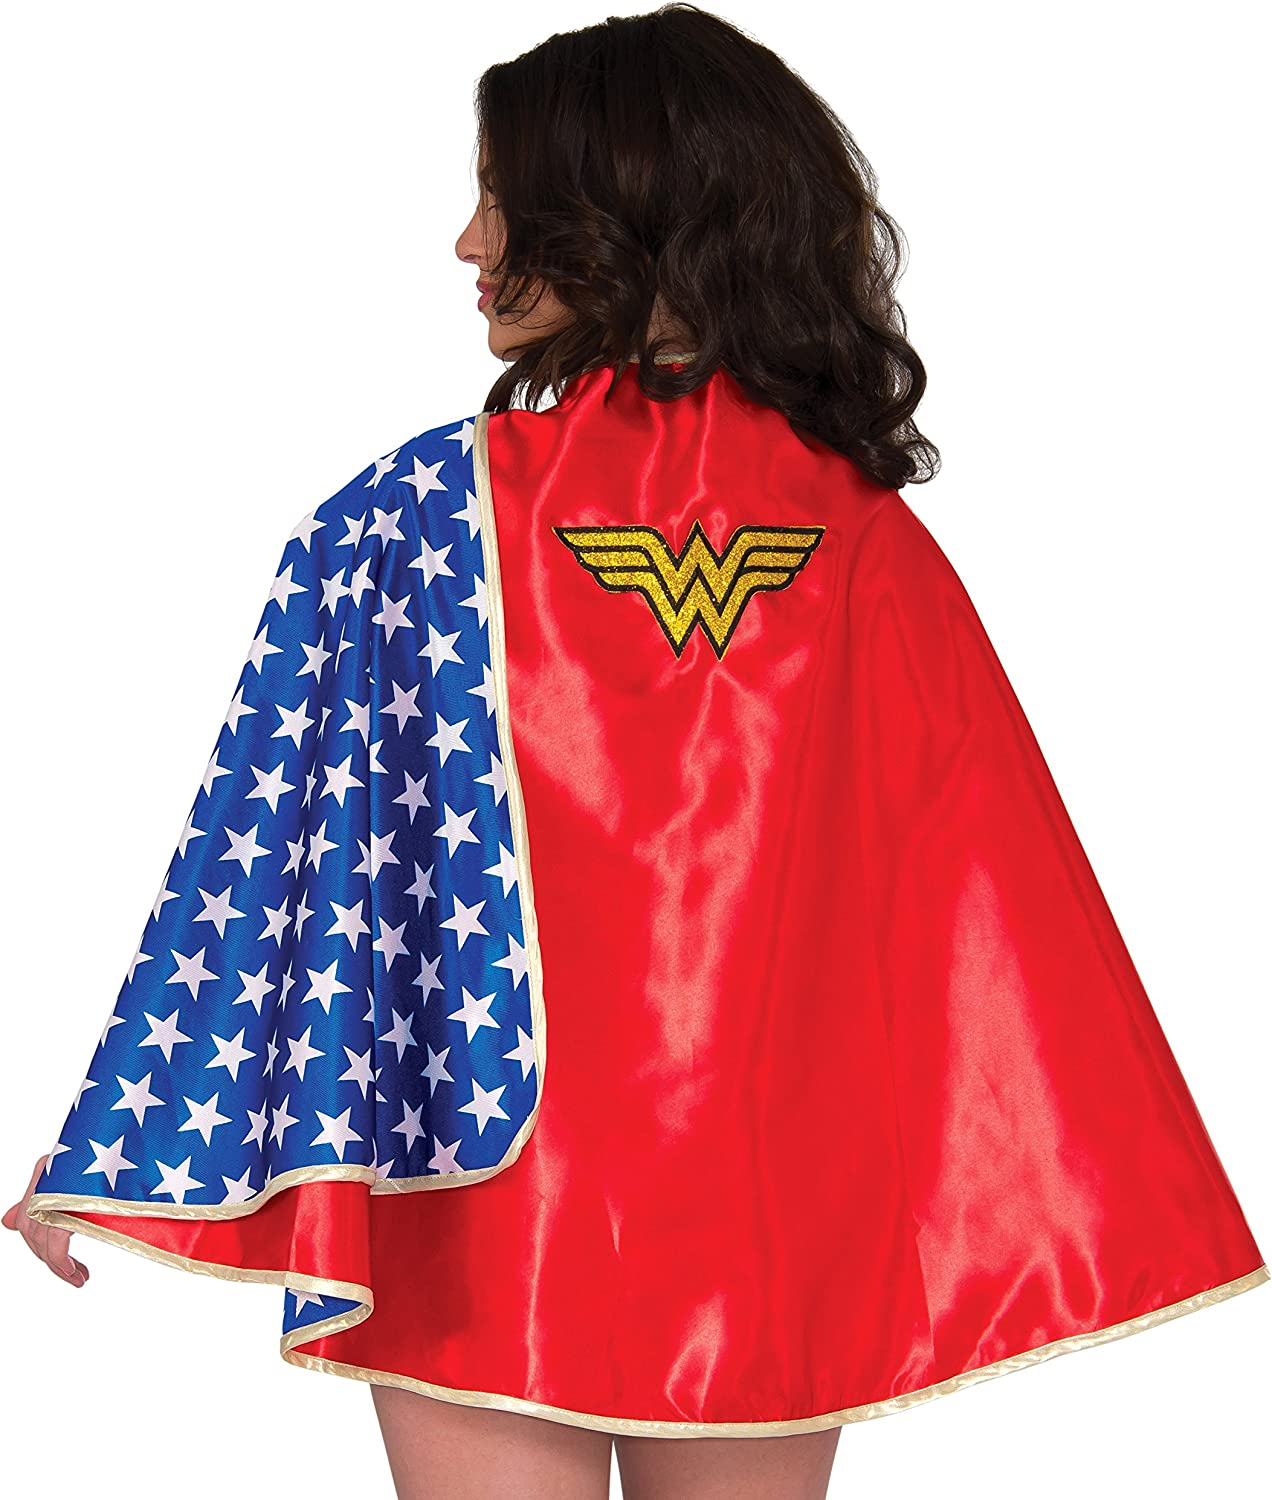 Rubie's DC Comics Free Shipping New Wonder Cape Our shop most popular 30-Inch Woman Adult